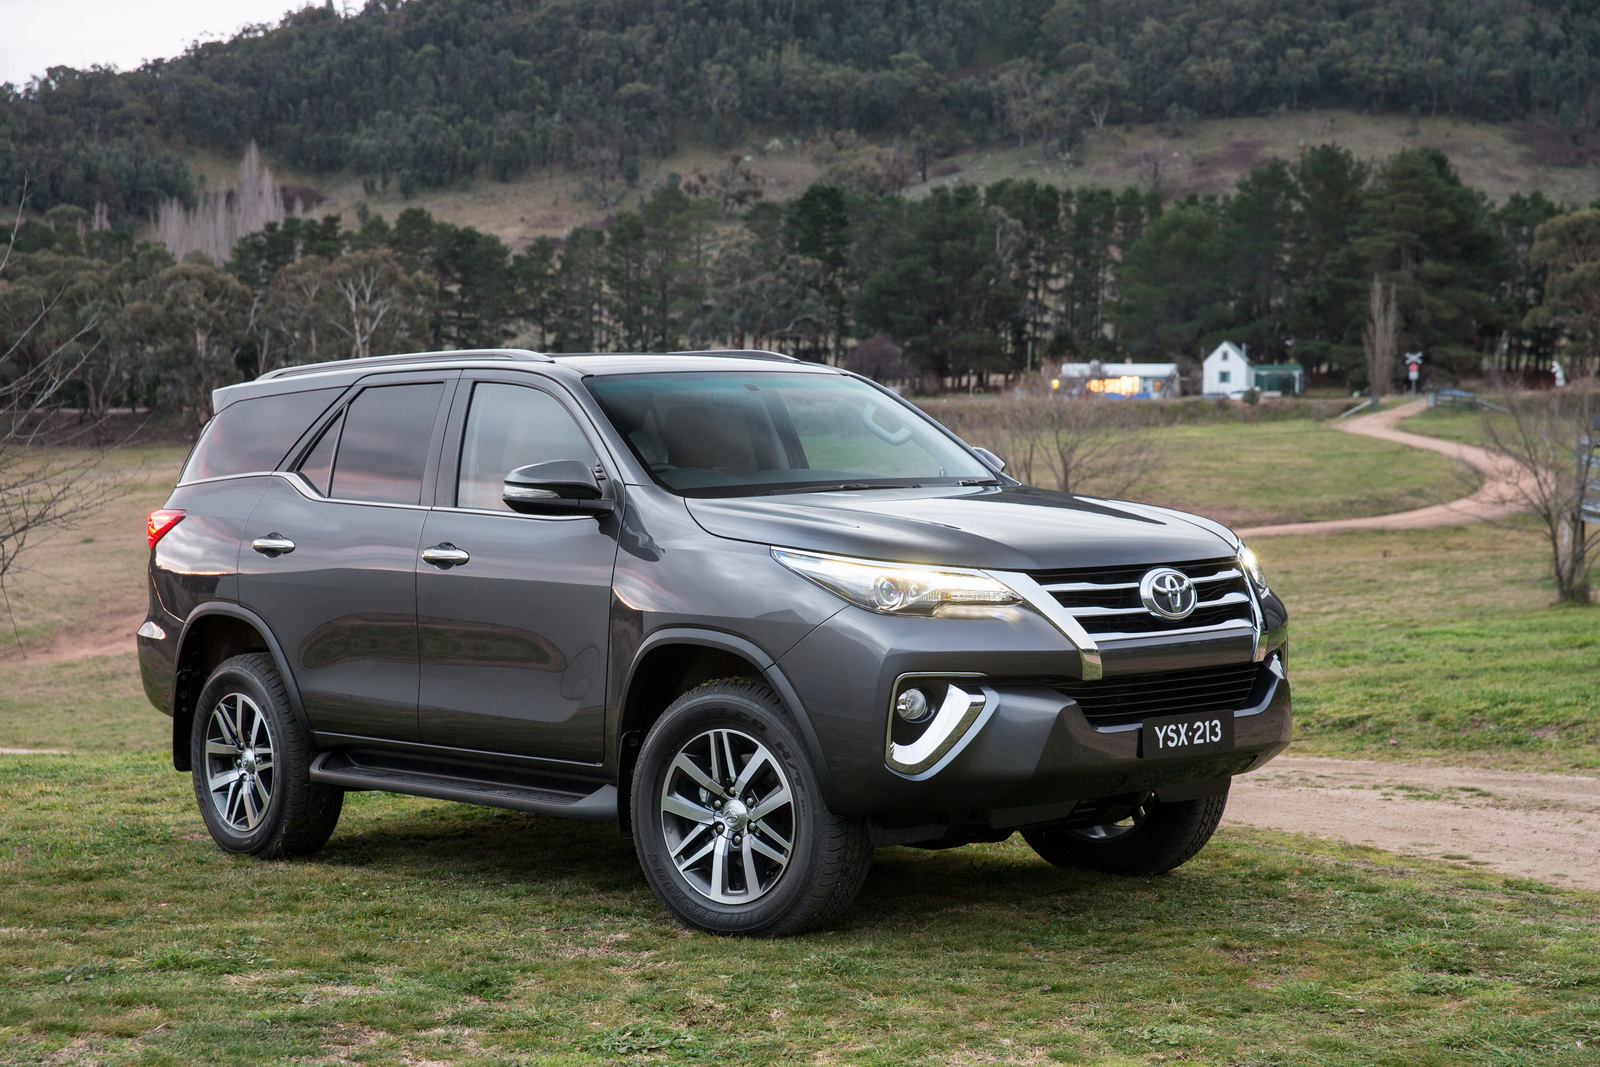 Hire Fortuner in Jammu Kashmir